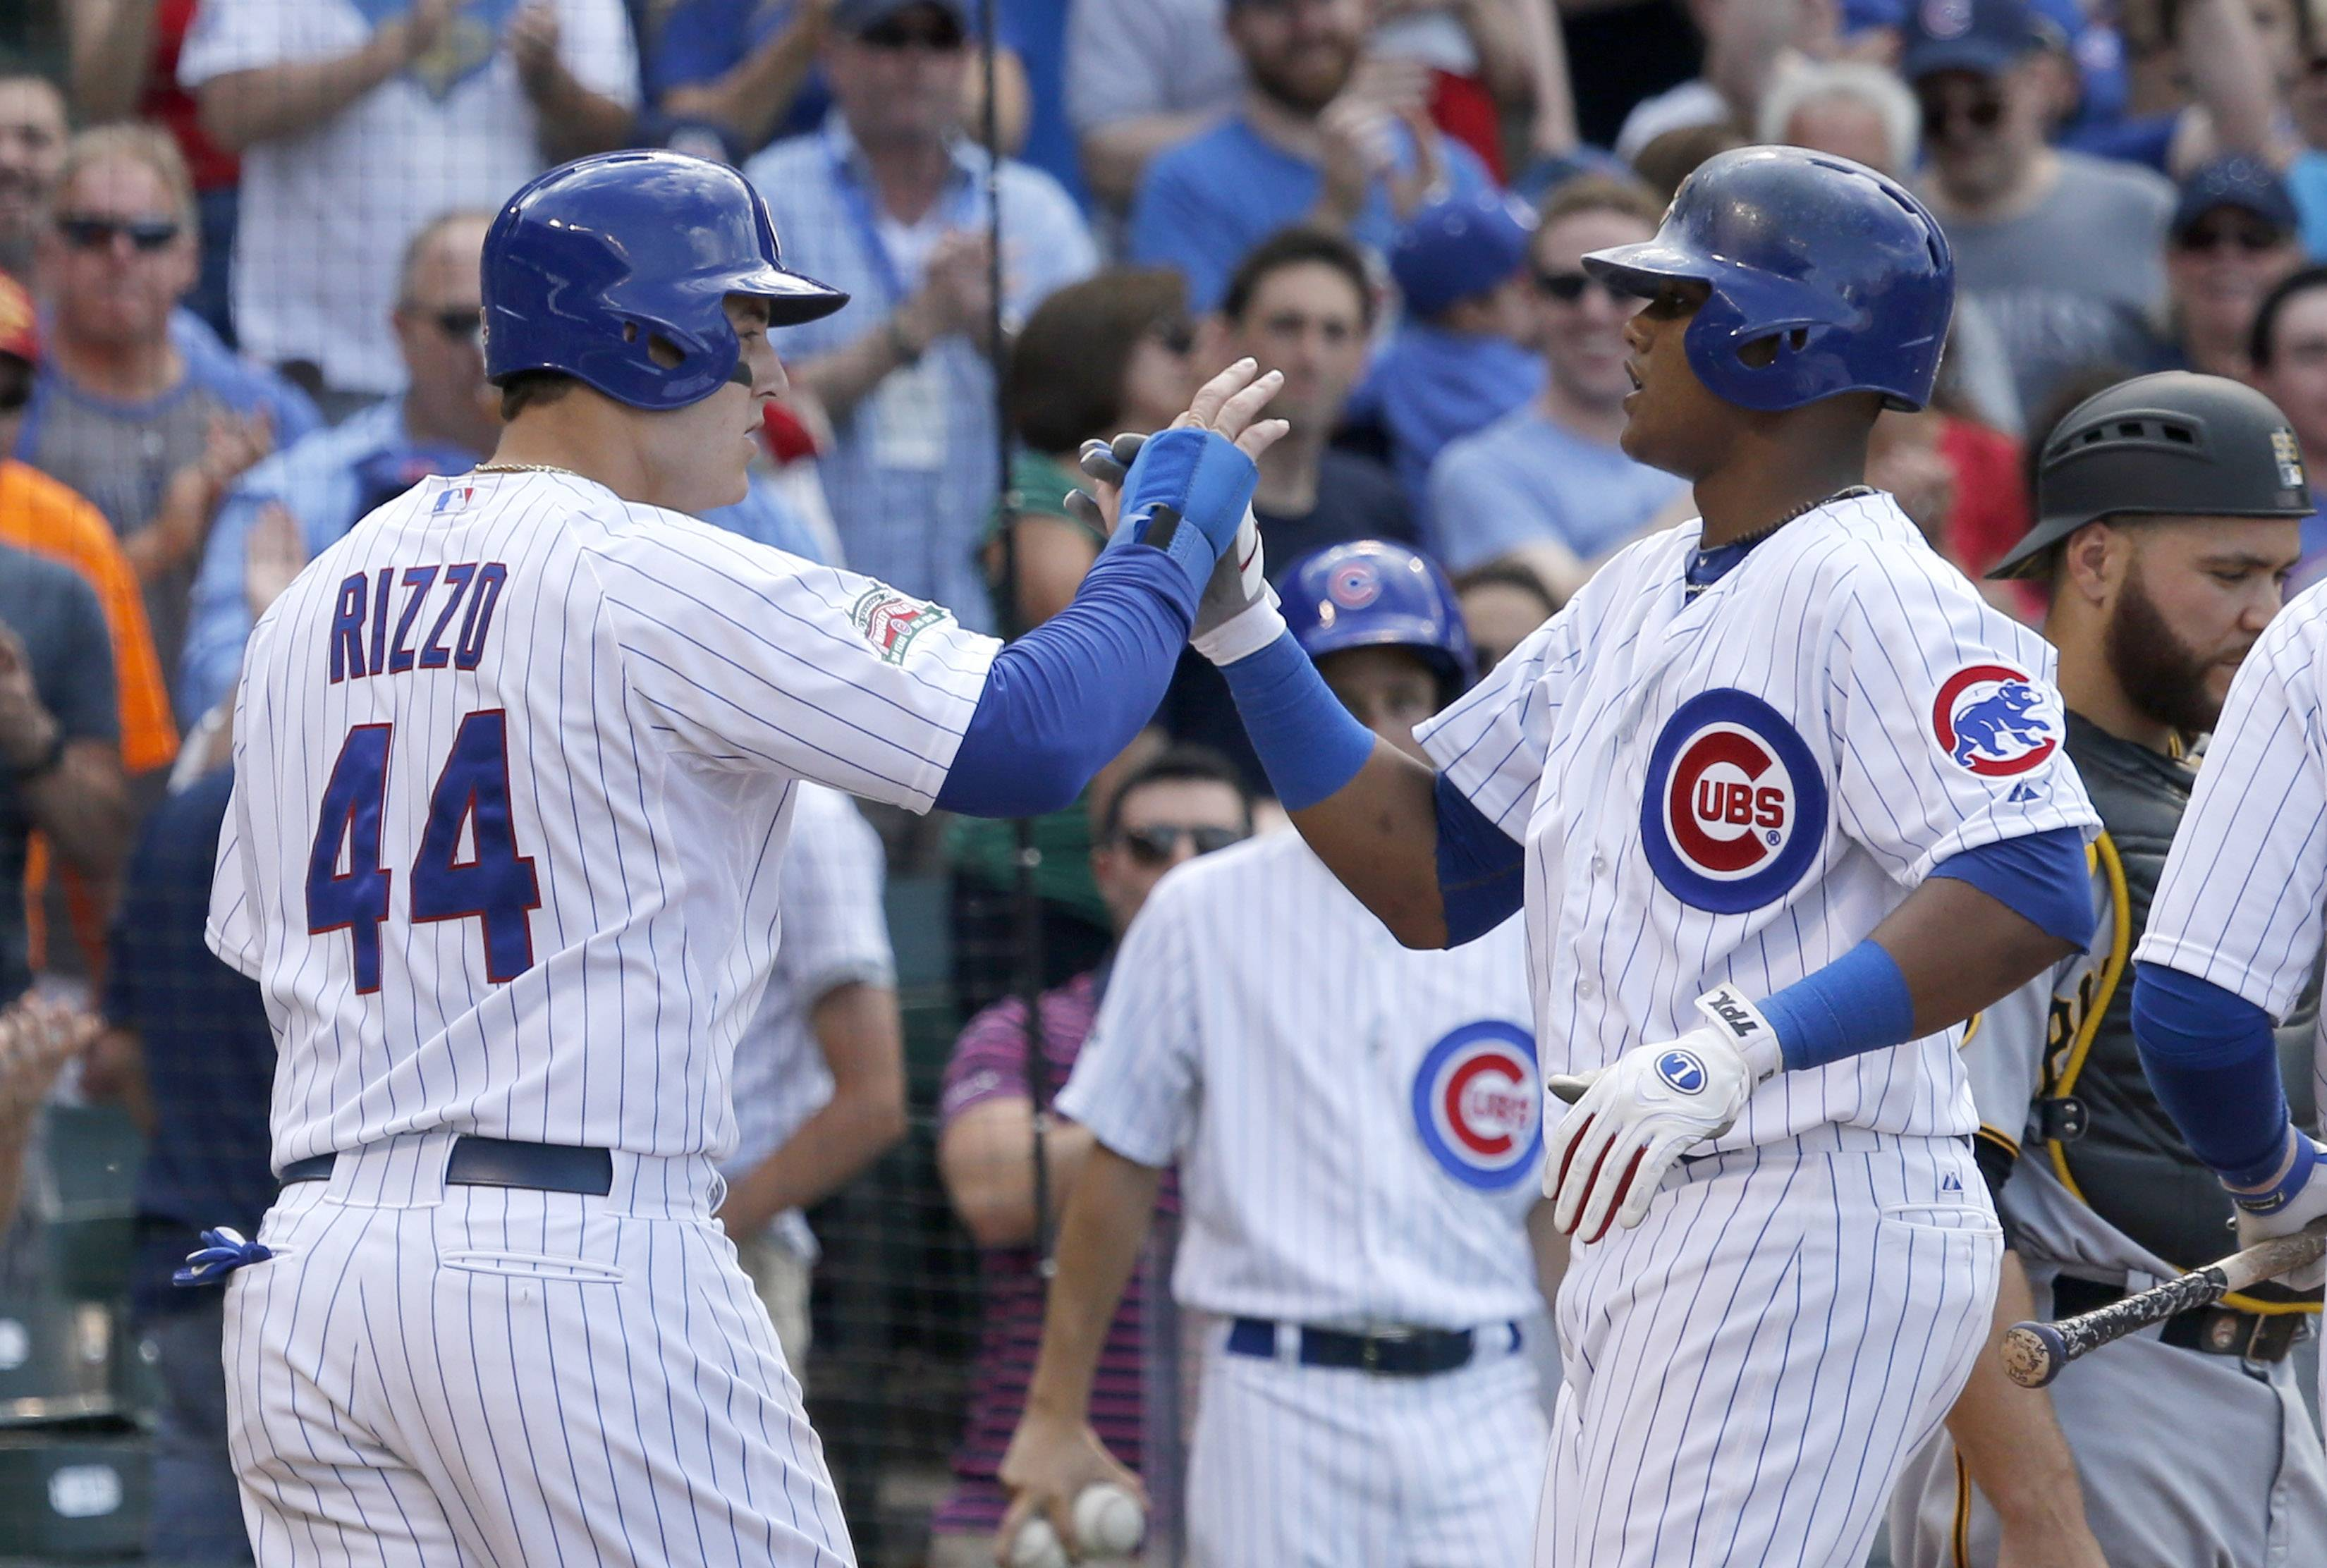 The Chicago Cubs' Starlin Castro, right, celebrates his three-run home run off Pittsburgh Pirates starting pitcher Charlie Morton with teammate Anthony Rizzo during the third inning of a baseball game on Friday, June 20, 2014, in Chicago. Rizzo and Chris Coghlan also scored on the hit.